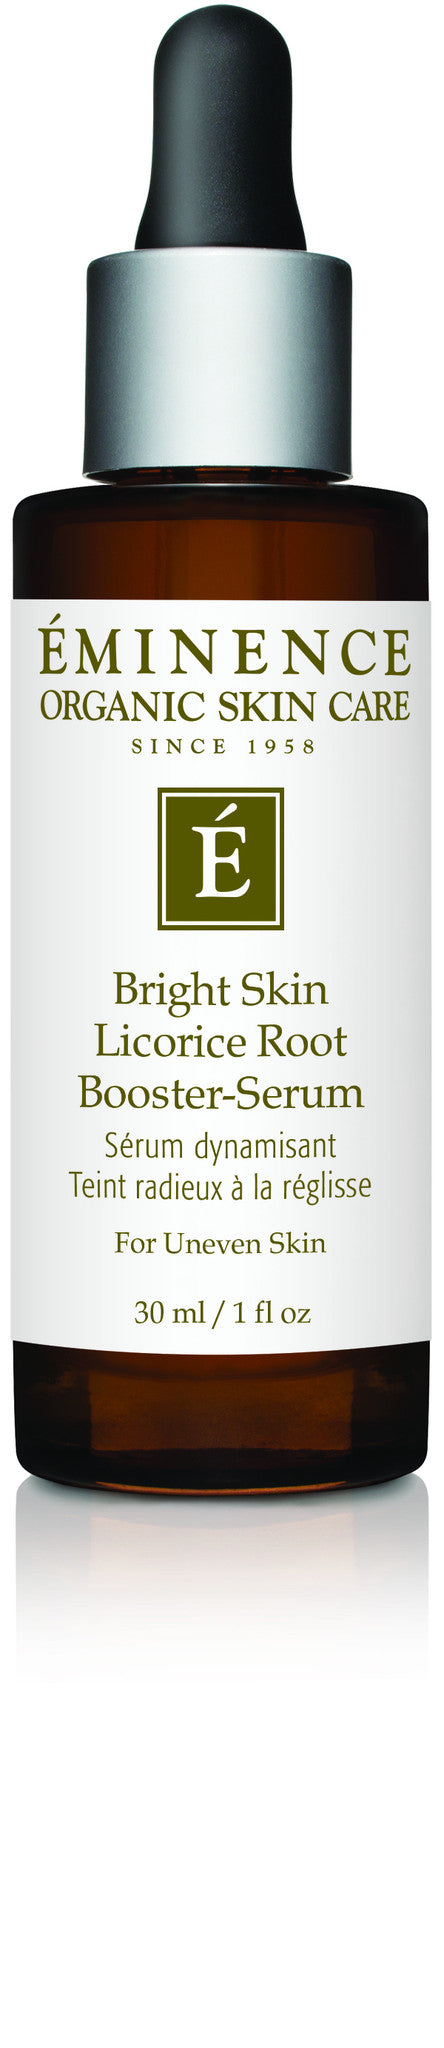 Bright Skin Licorice Root Booster-Serum - Organic Skin Therapy